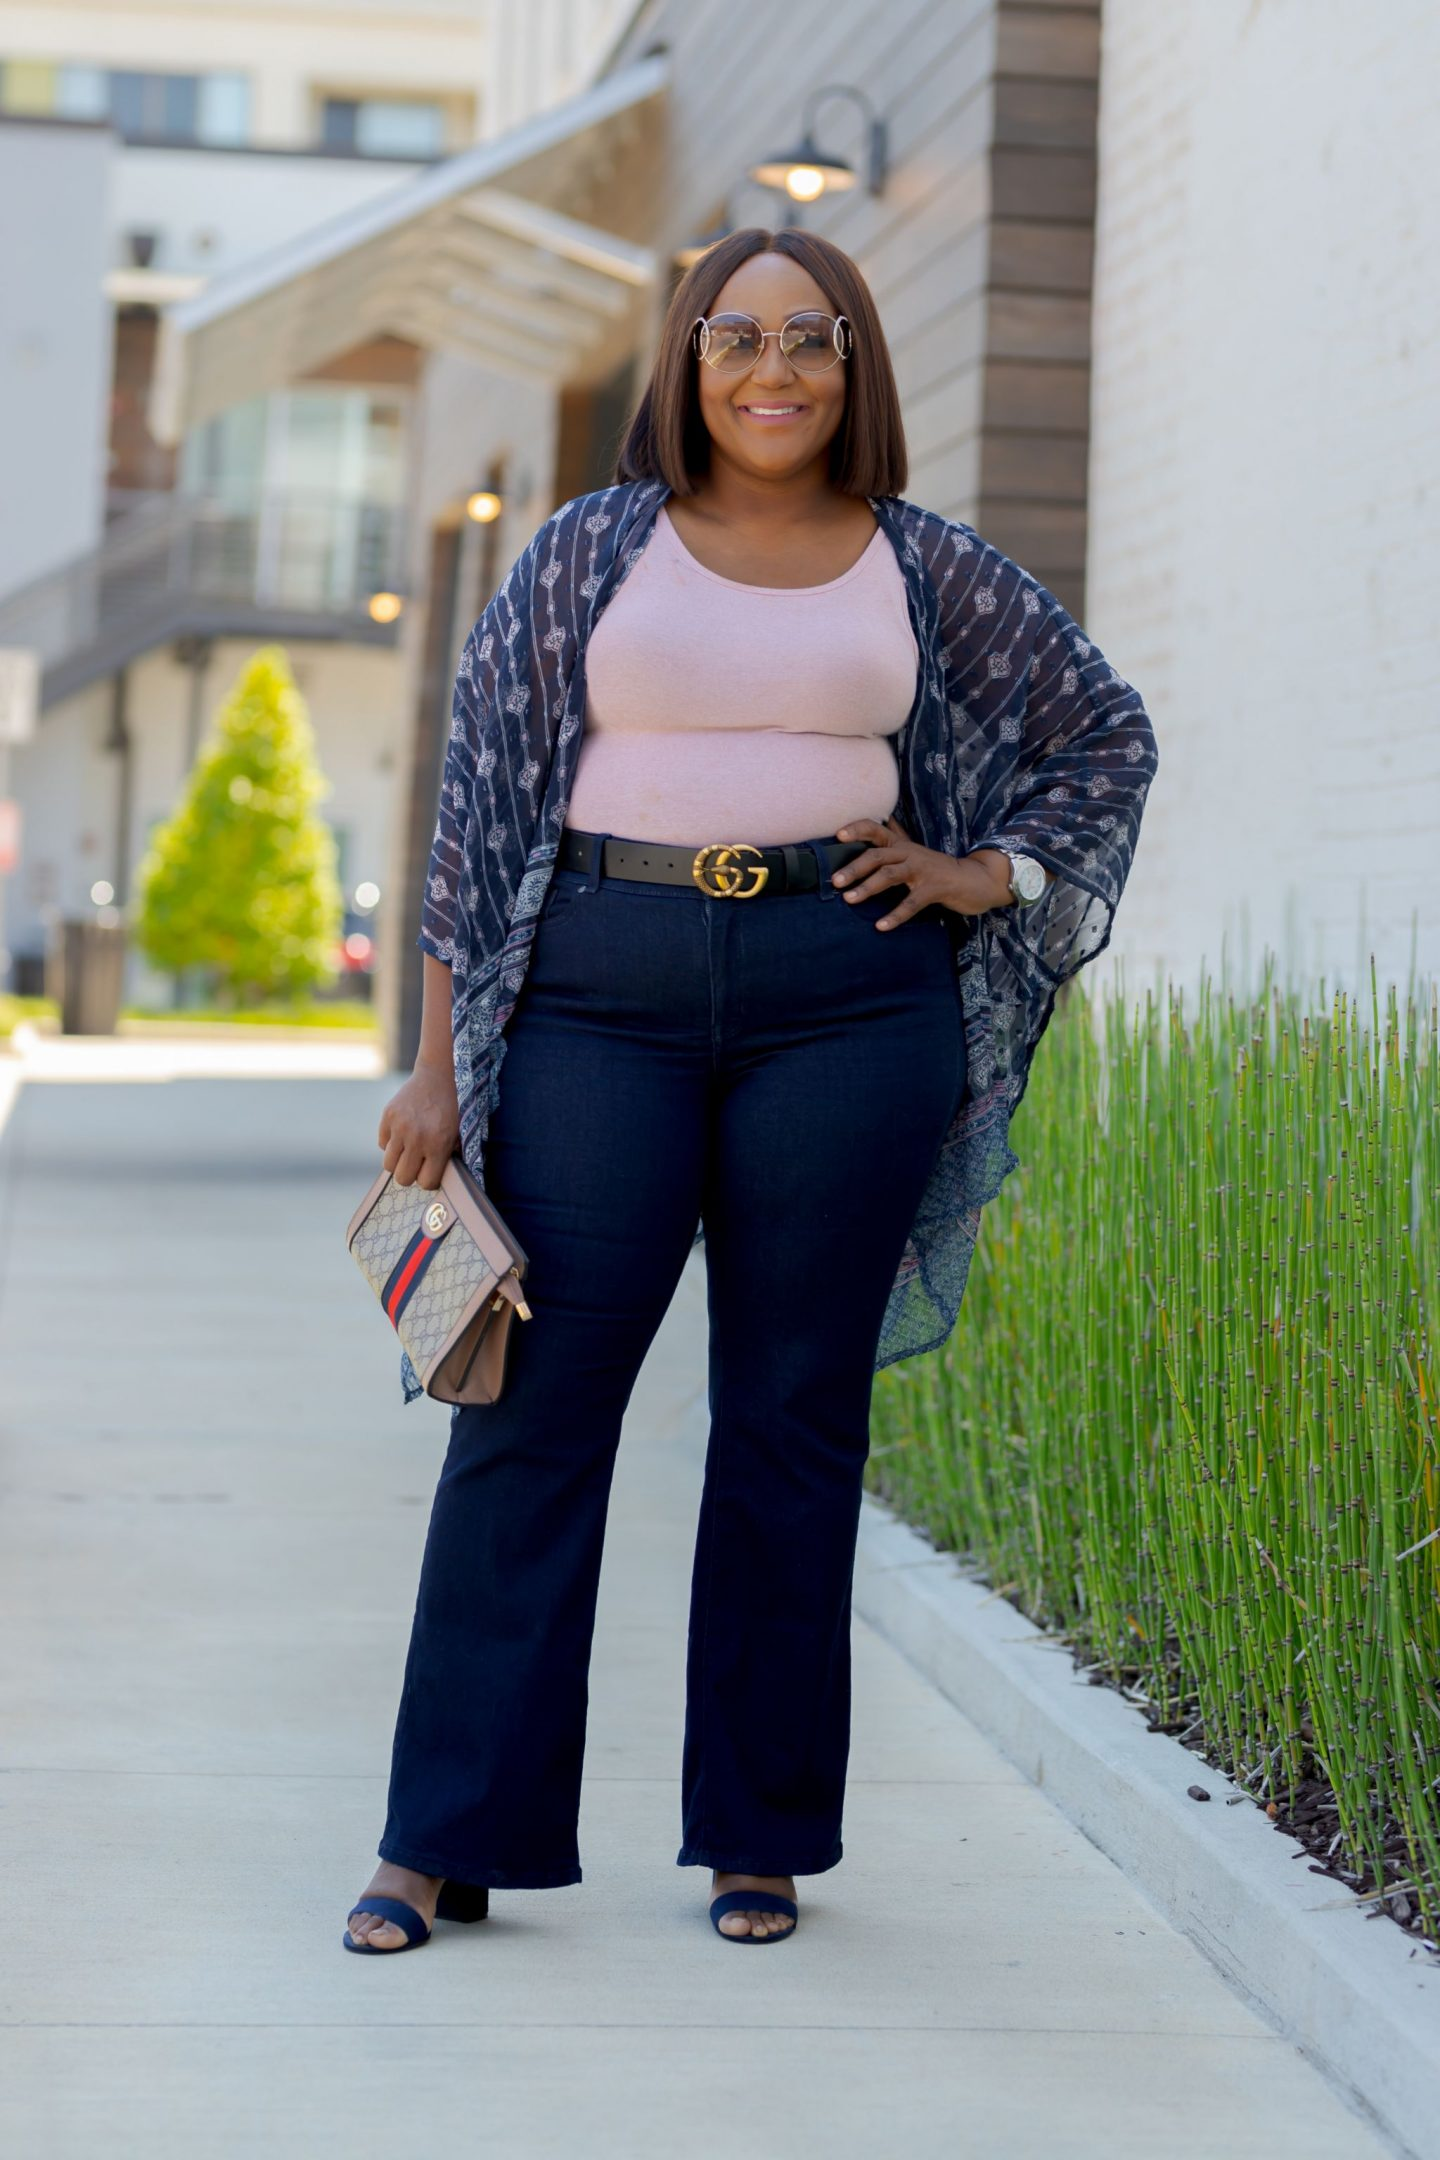 Influencer Nikki Free wearing Lane Bryant Flex Magic Waistband Jean